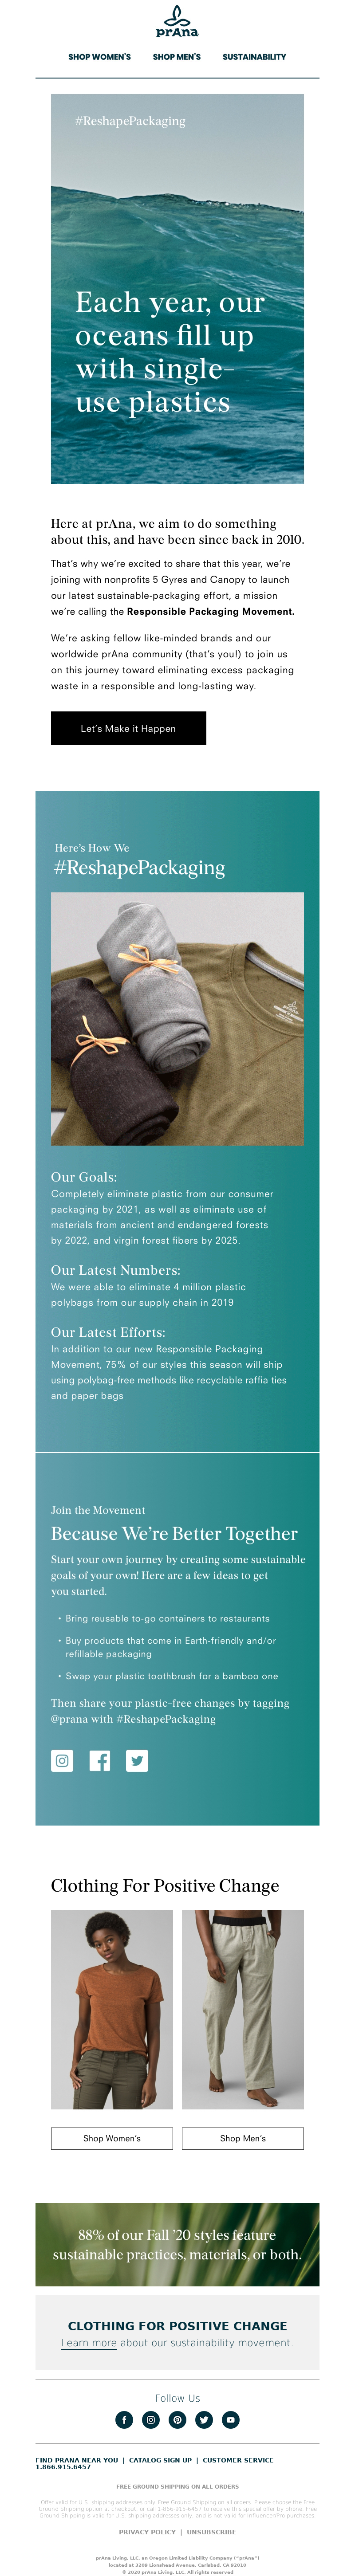 prAna - Join the Responsible Packaging Movement